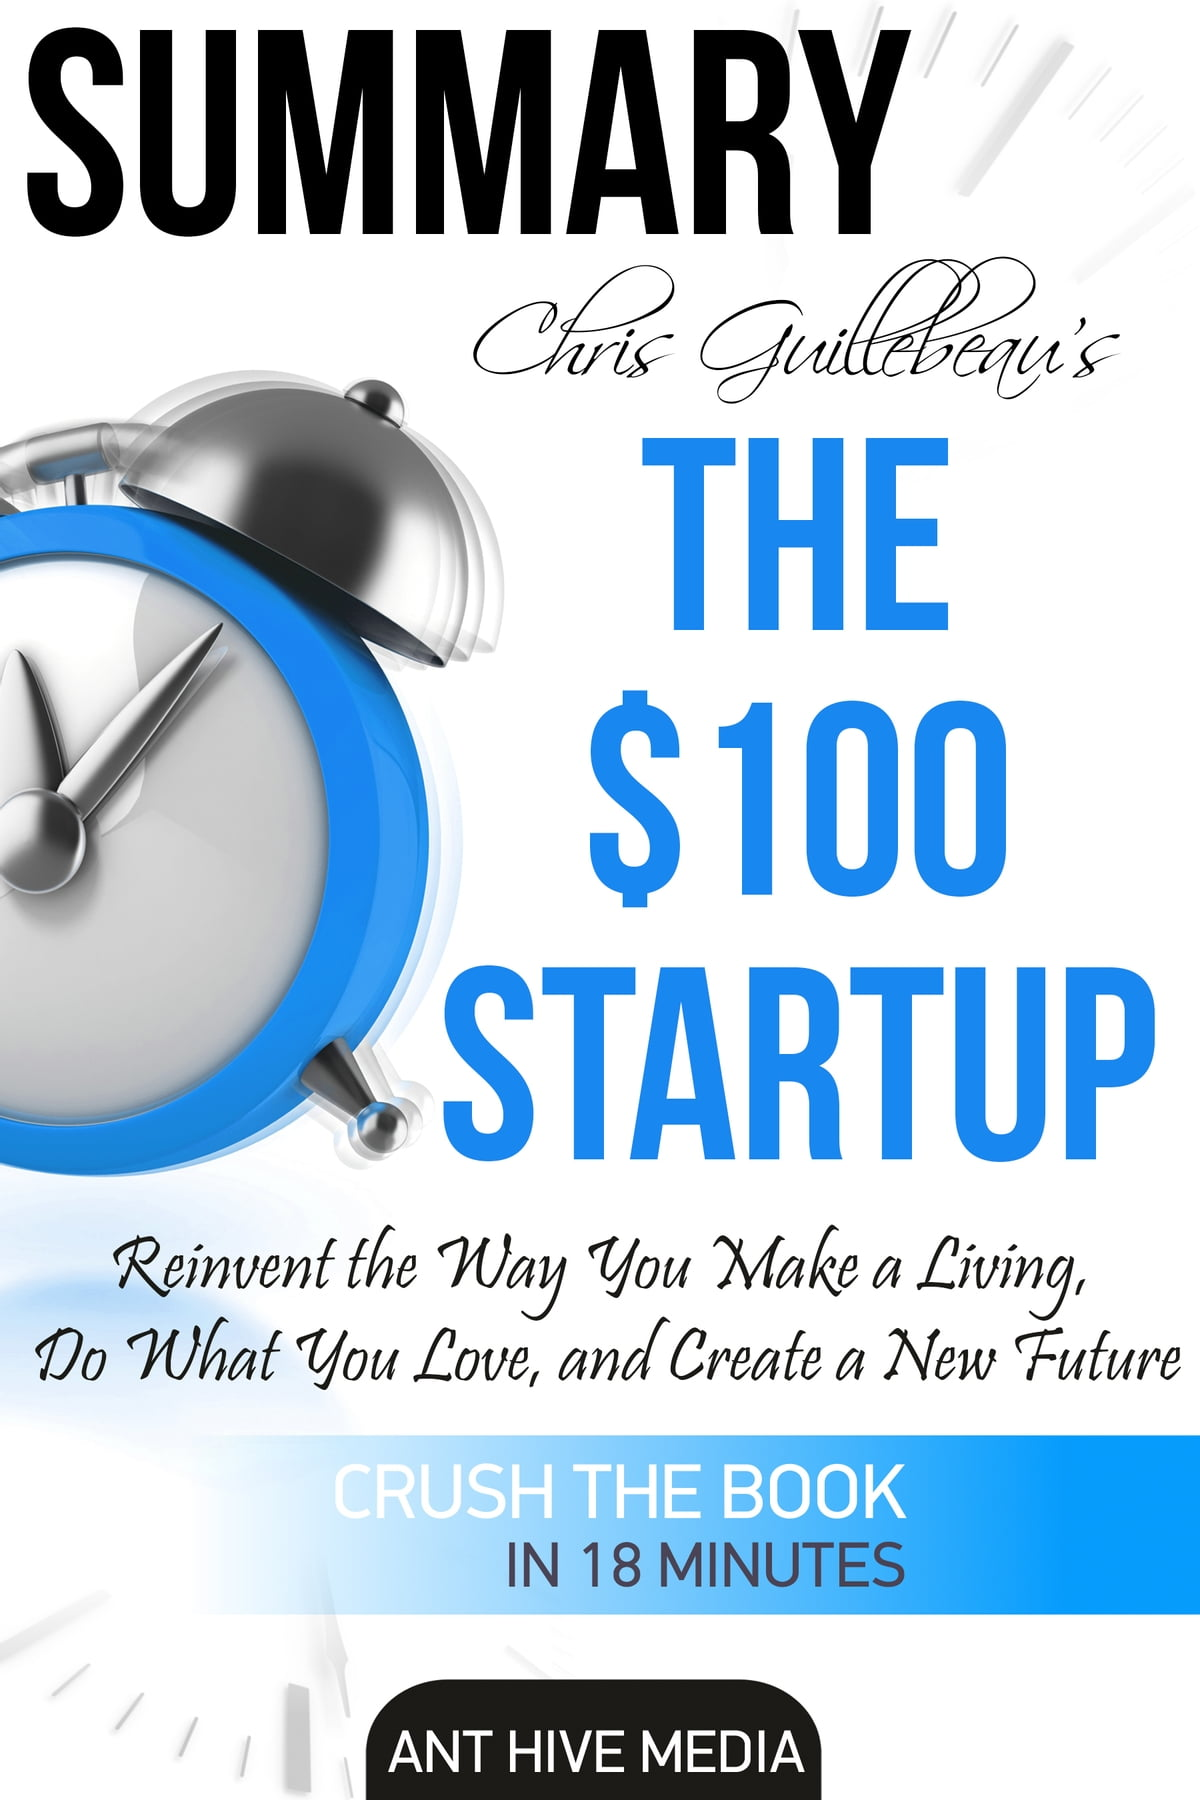 Chris Guillebeau's The $100 Startup: Reinvent the Way You Make a Living, Do  What You Love, and Create a New Future | Summary ebook by Ant Hive Media -